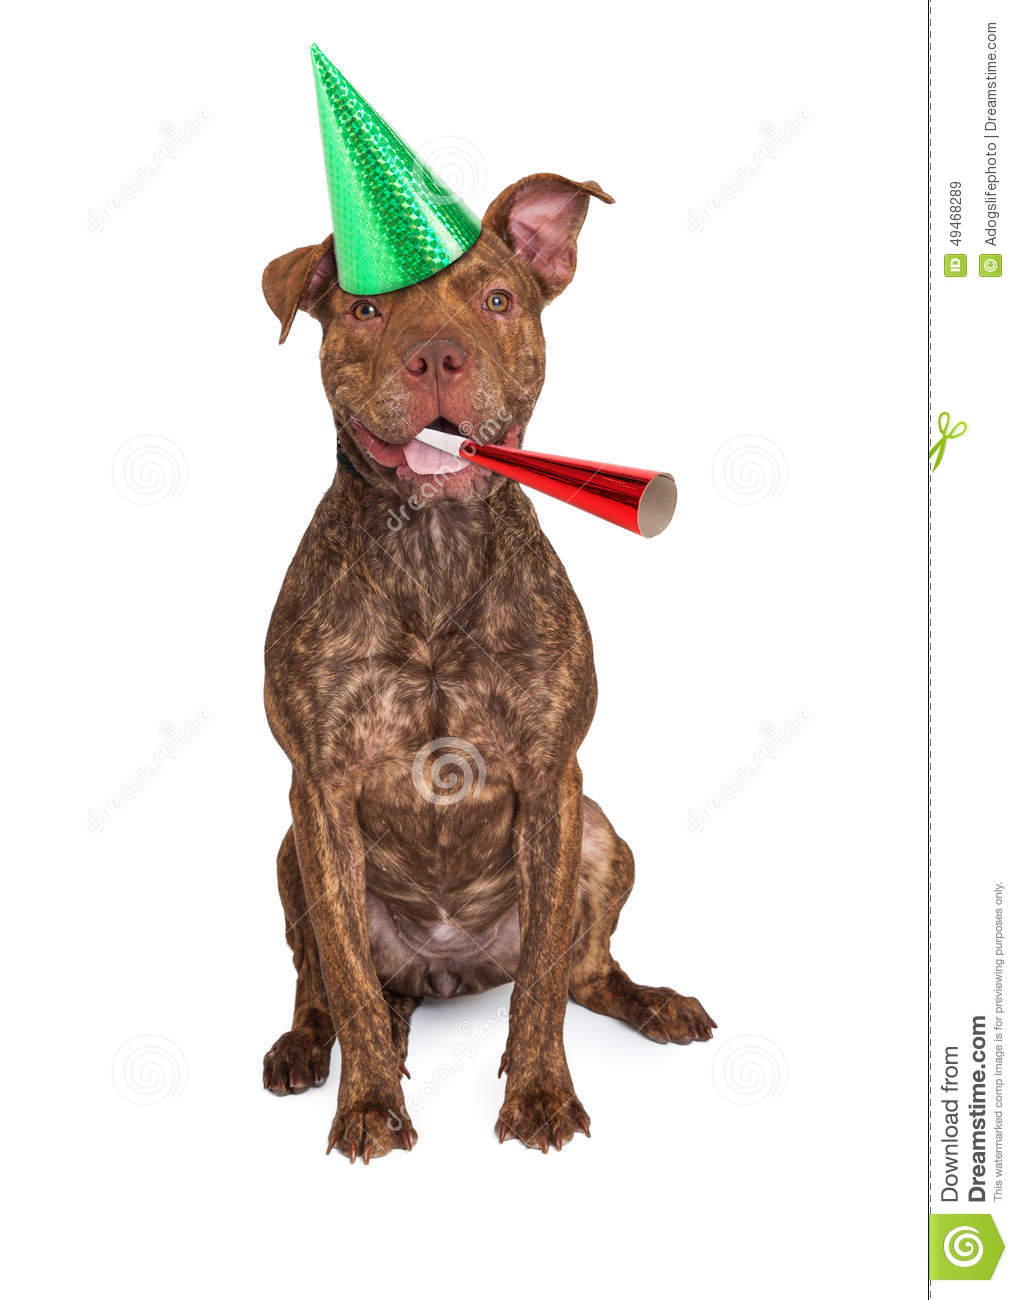 Dog With Hat Maker : maker, Happy, Party, Stock, Image., Image, Funny,, 49468289